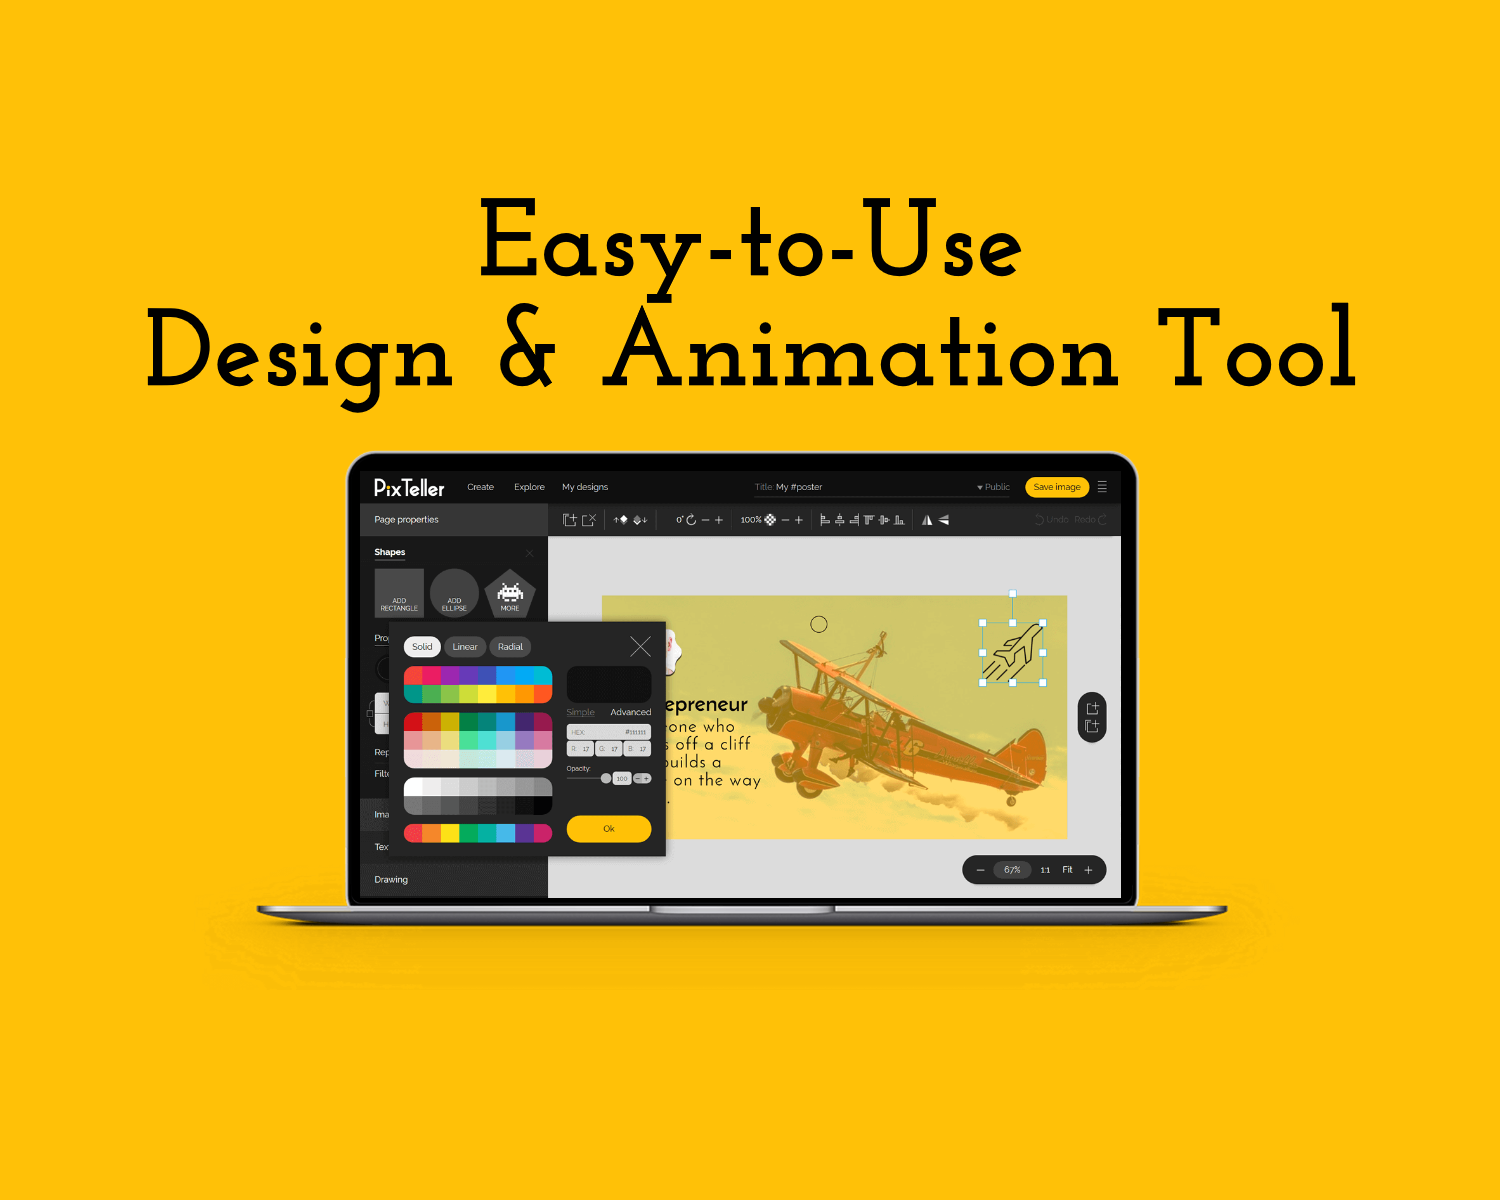 Easy-to-Use design & animation tool